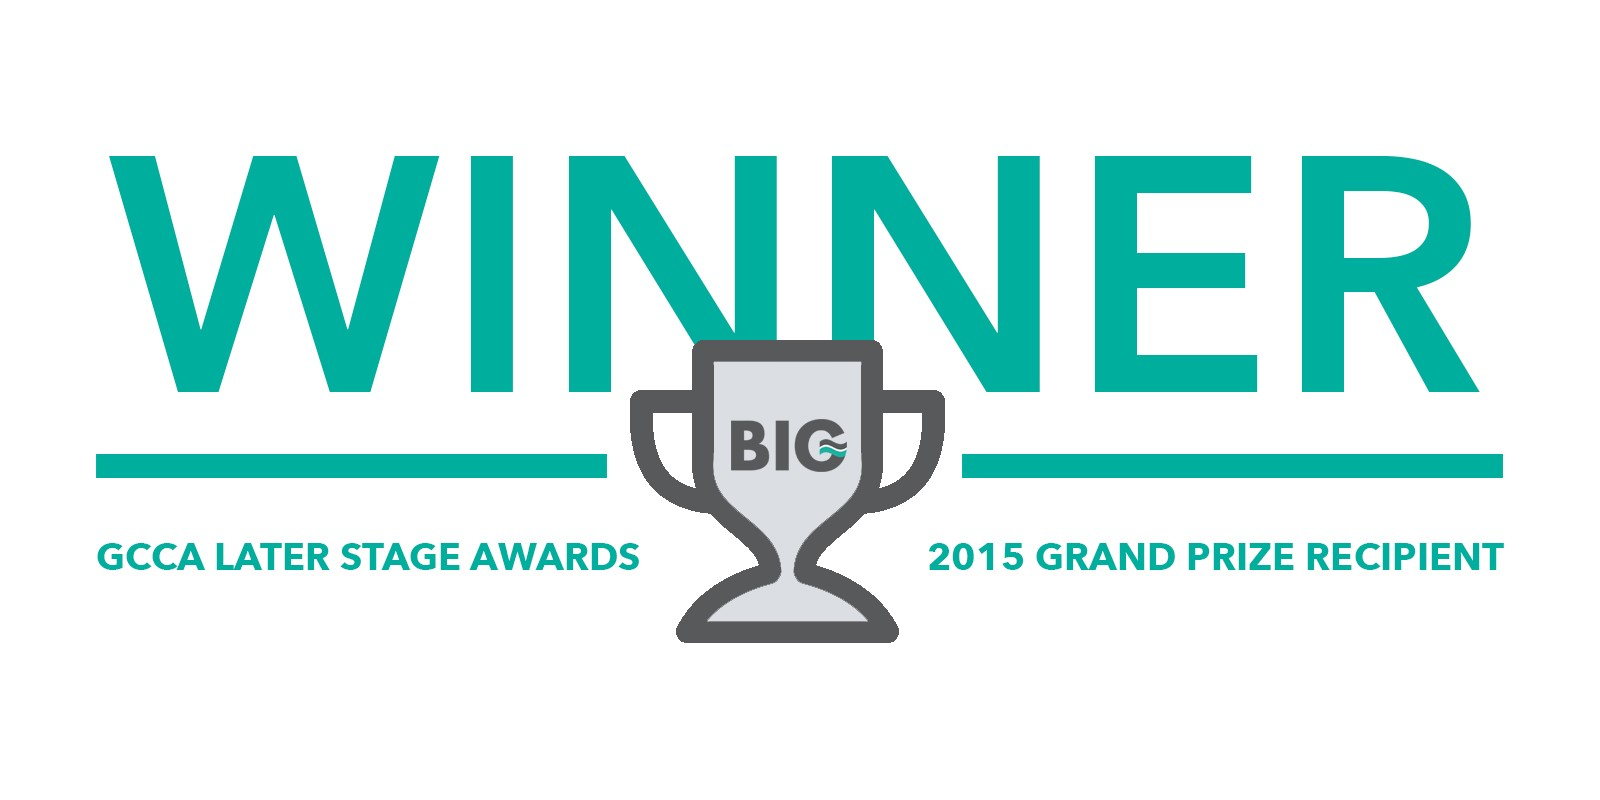 blueingreen named grand prize winner at gcca later stage awards